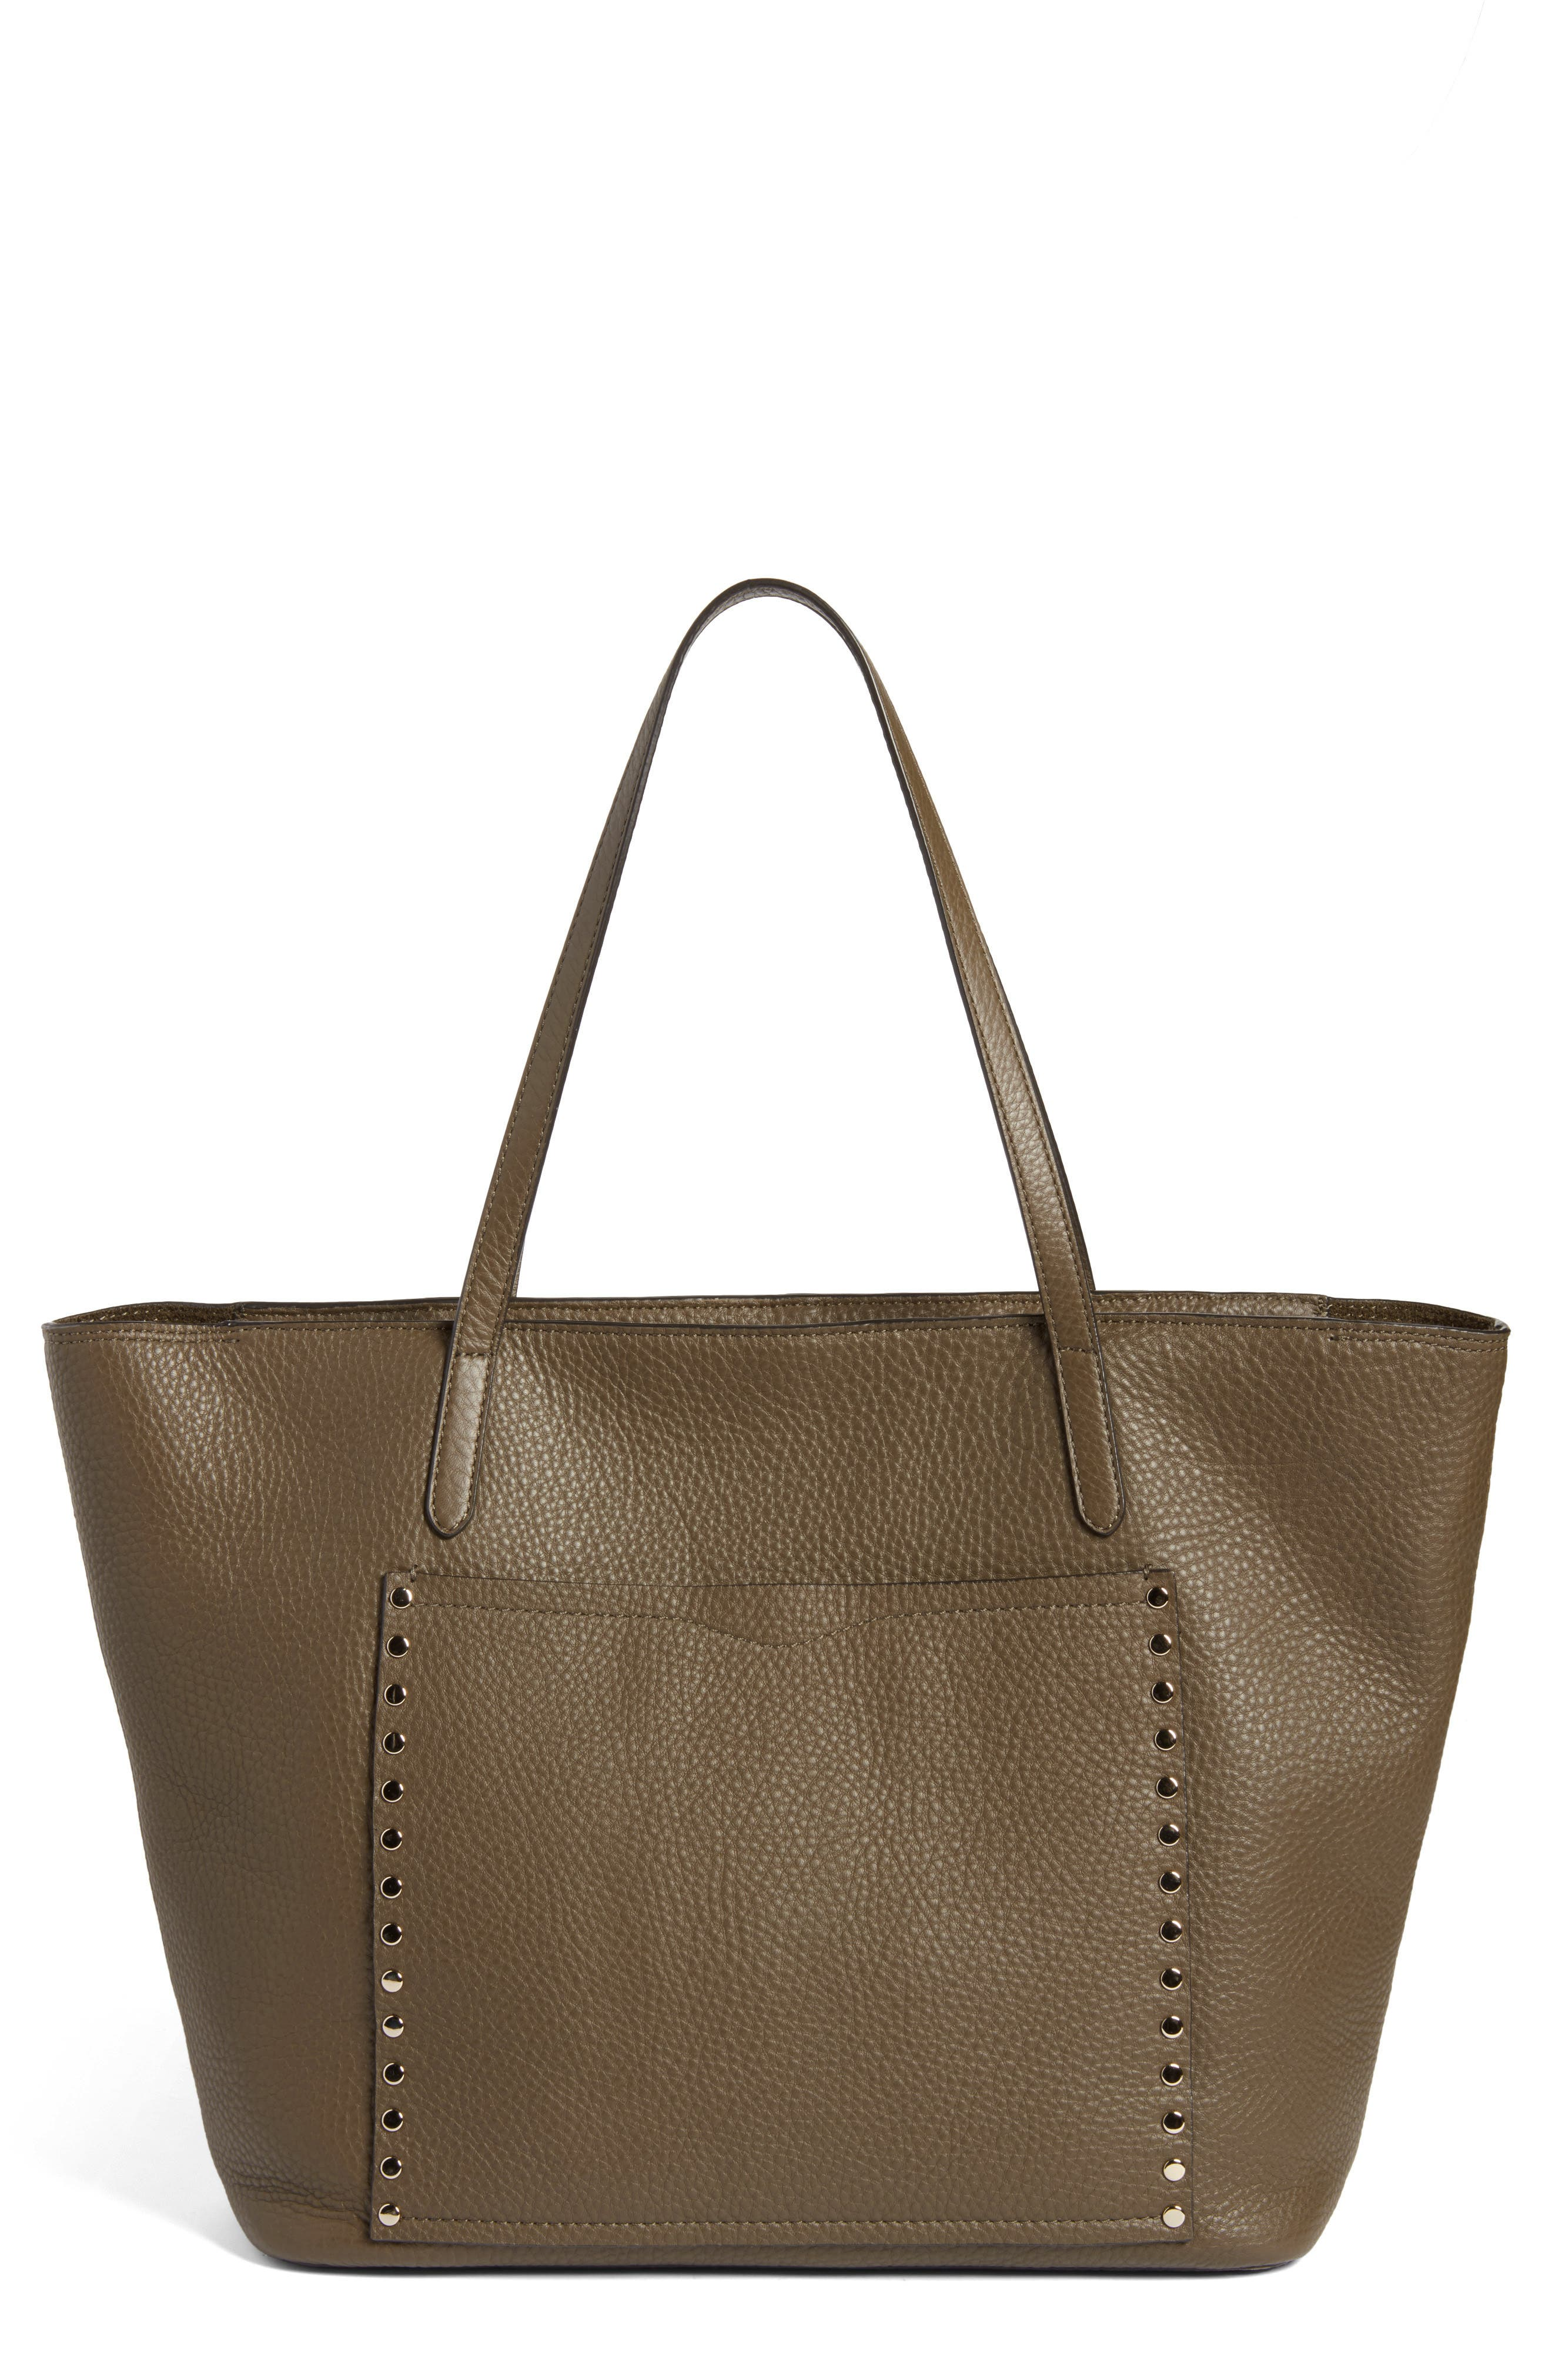 Unlined Front Pocket Leather Tote,                             Main thumbnail 1, color,                             Moss/ Light Gold Hardware